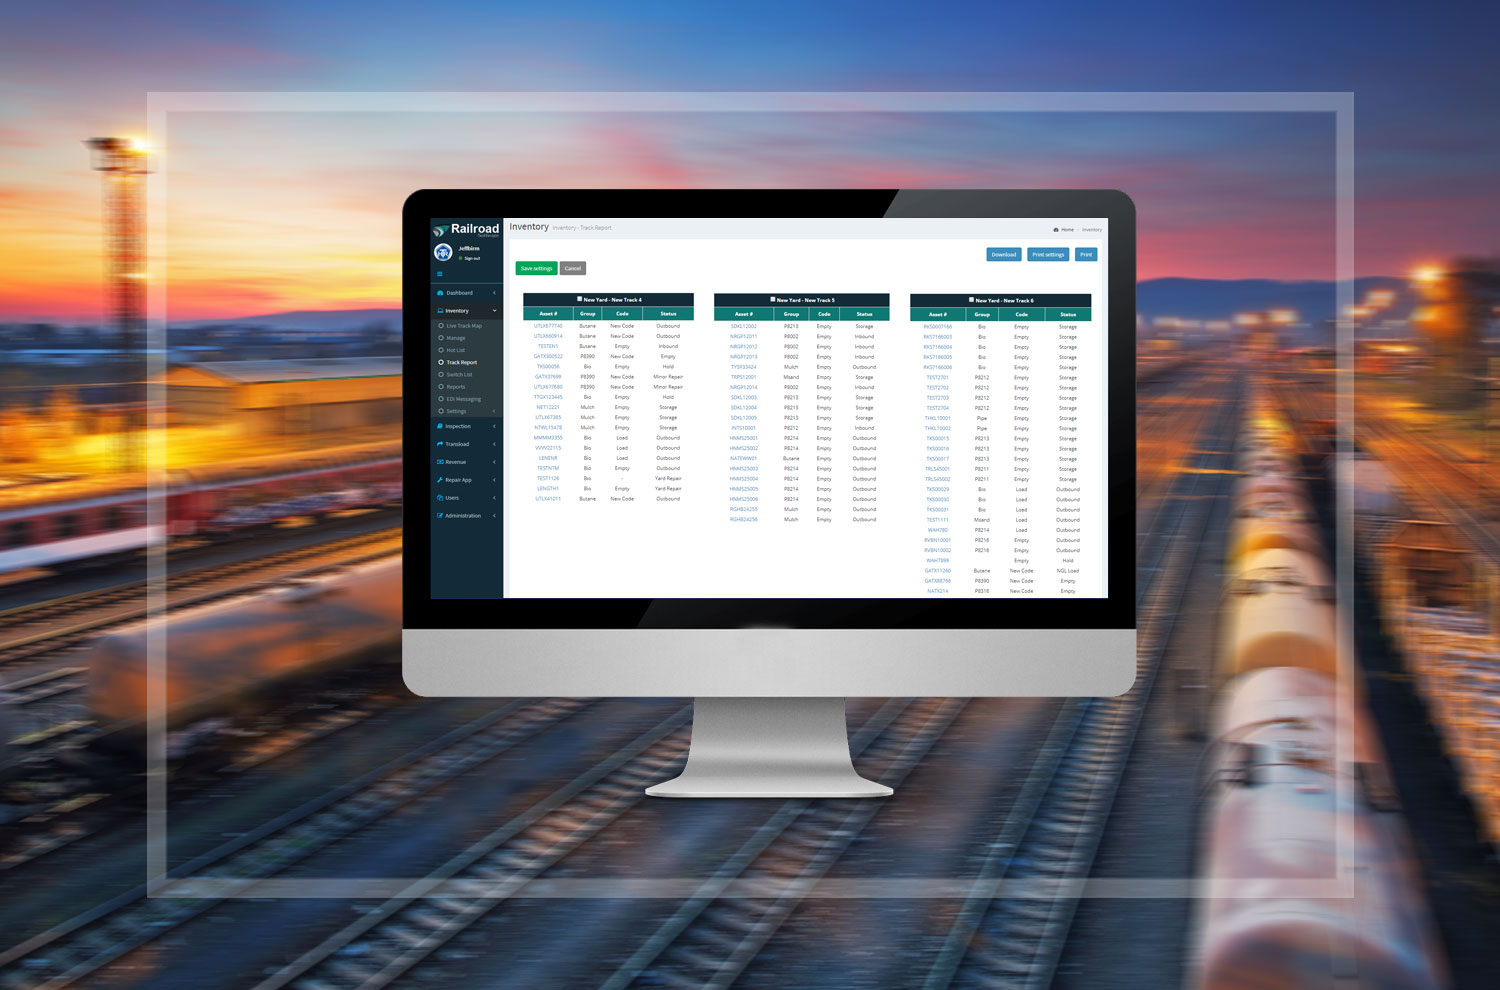 Custom building of forms and reports gives great flexibility to railroading companies large and small